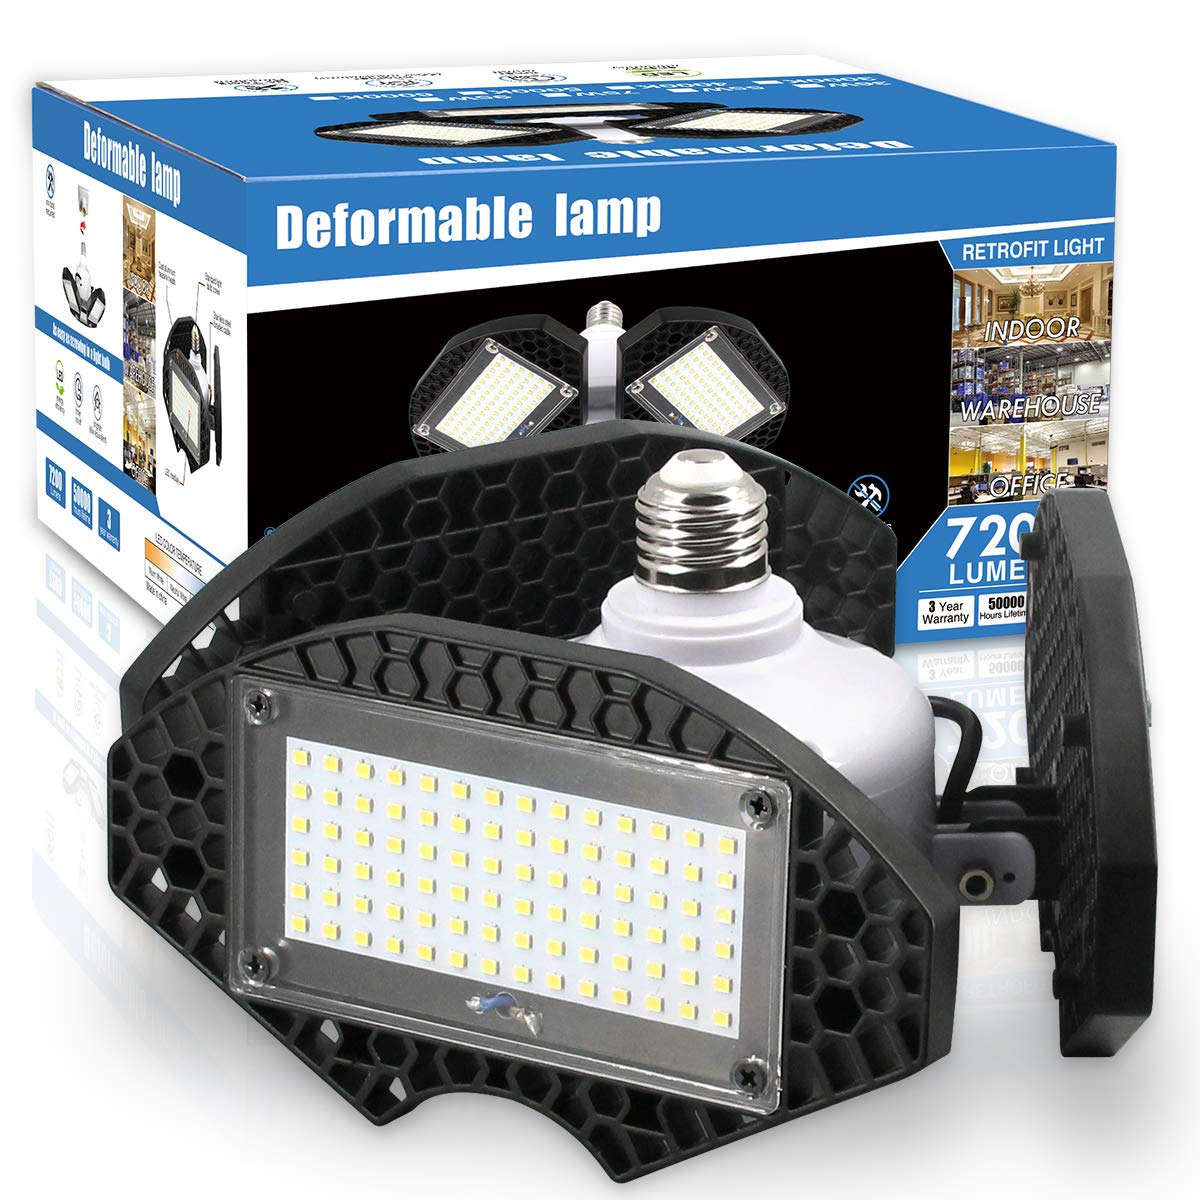 LED Garage Lights,100W Deformable LED Garage Ceiling Lights12500 LM CRI 80 Led Shop Lights for Garage, Garage Lights with 3 Adjustable Panels, Utility Led Garage Lighting (No Motion Activated) 100W1PK